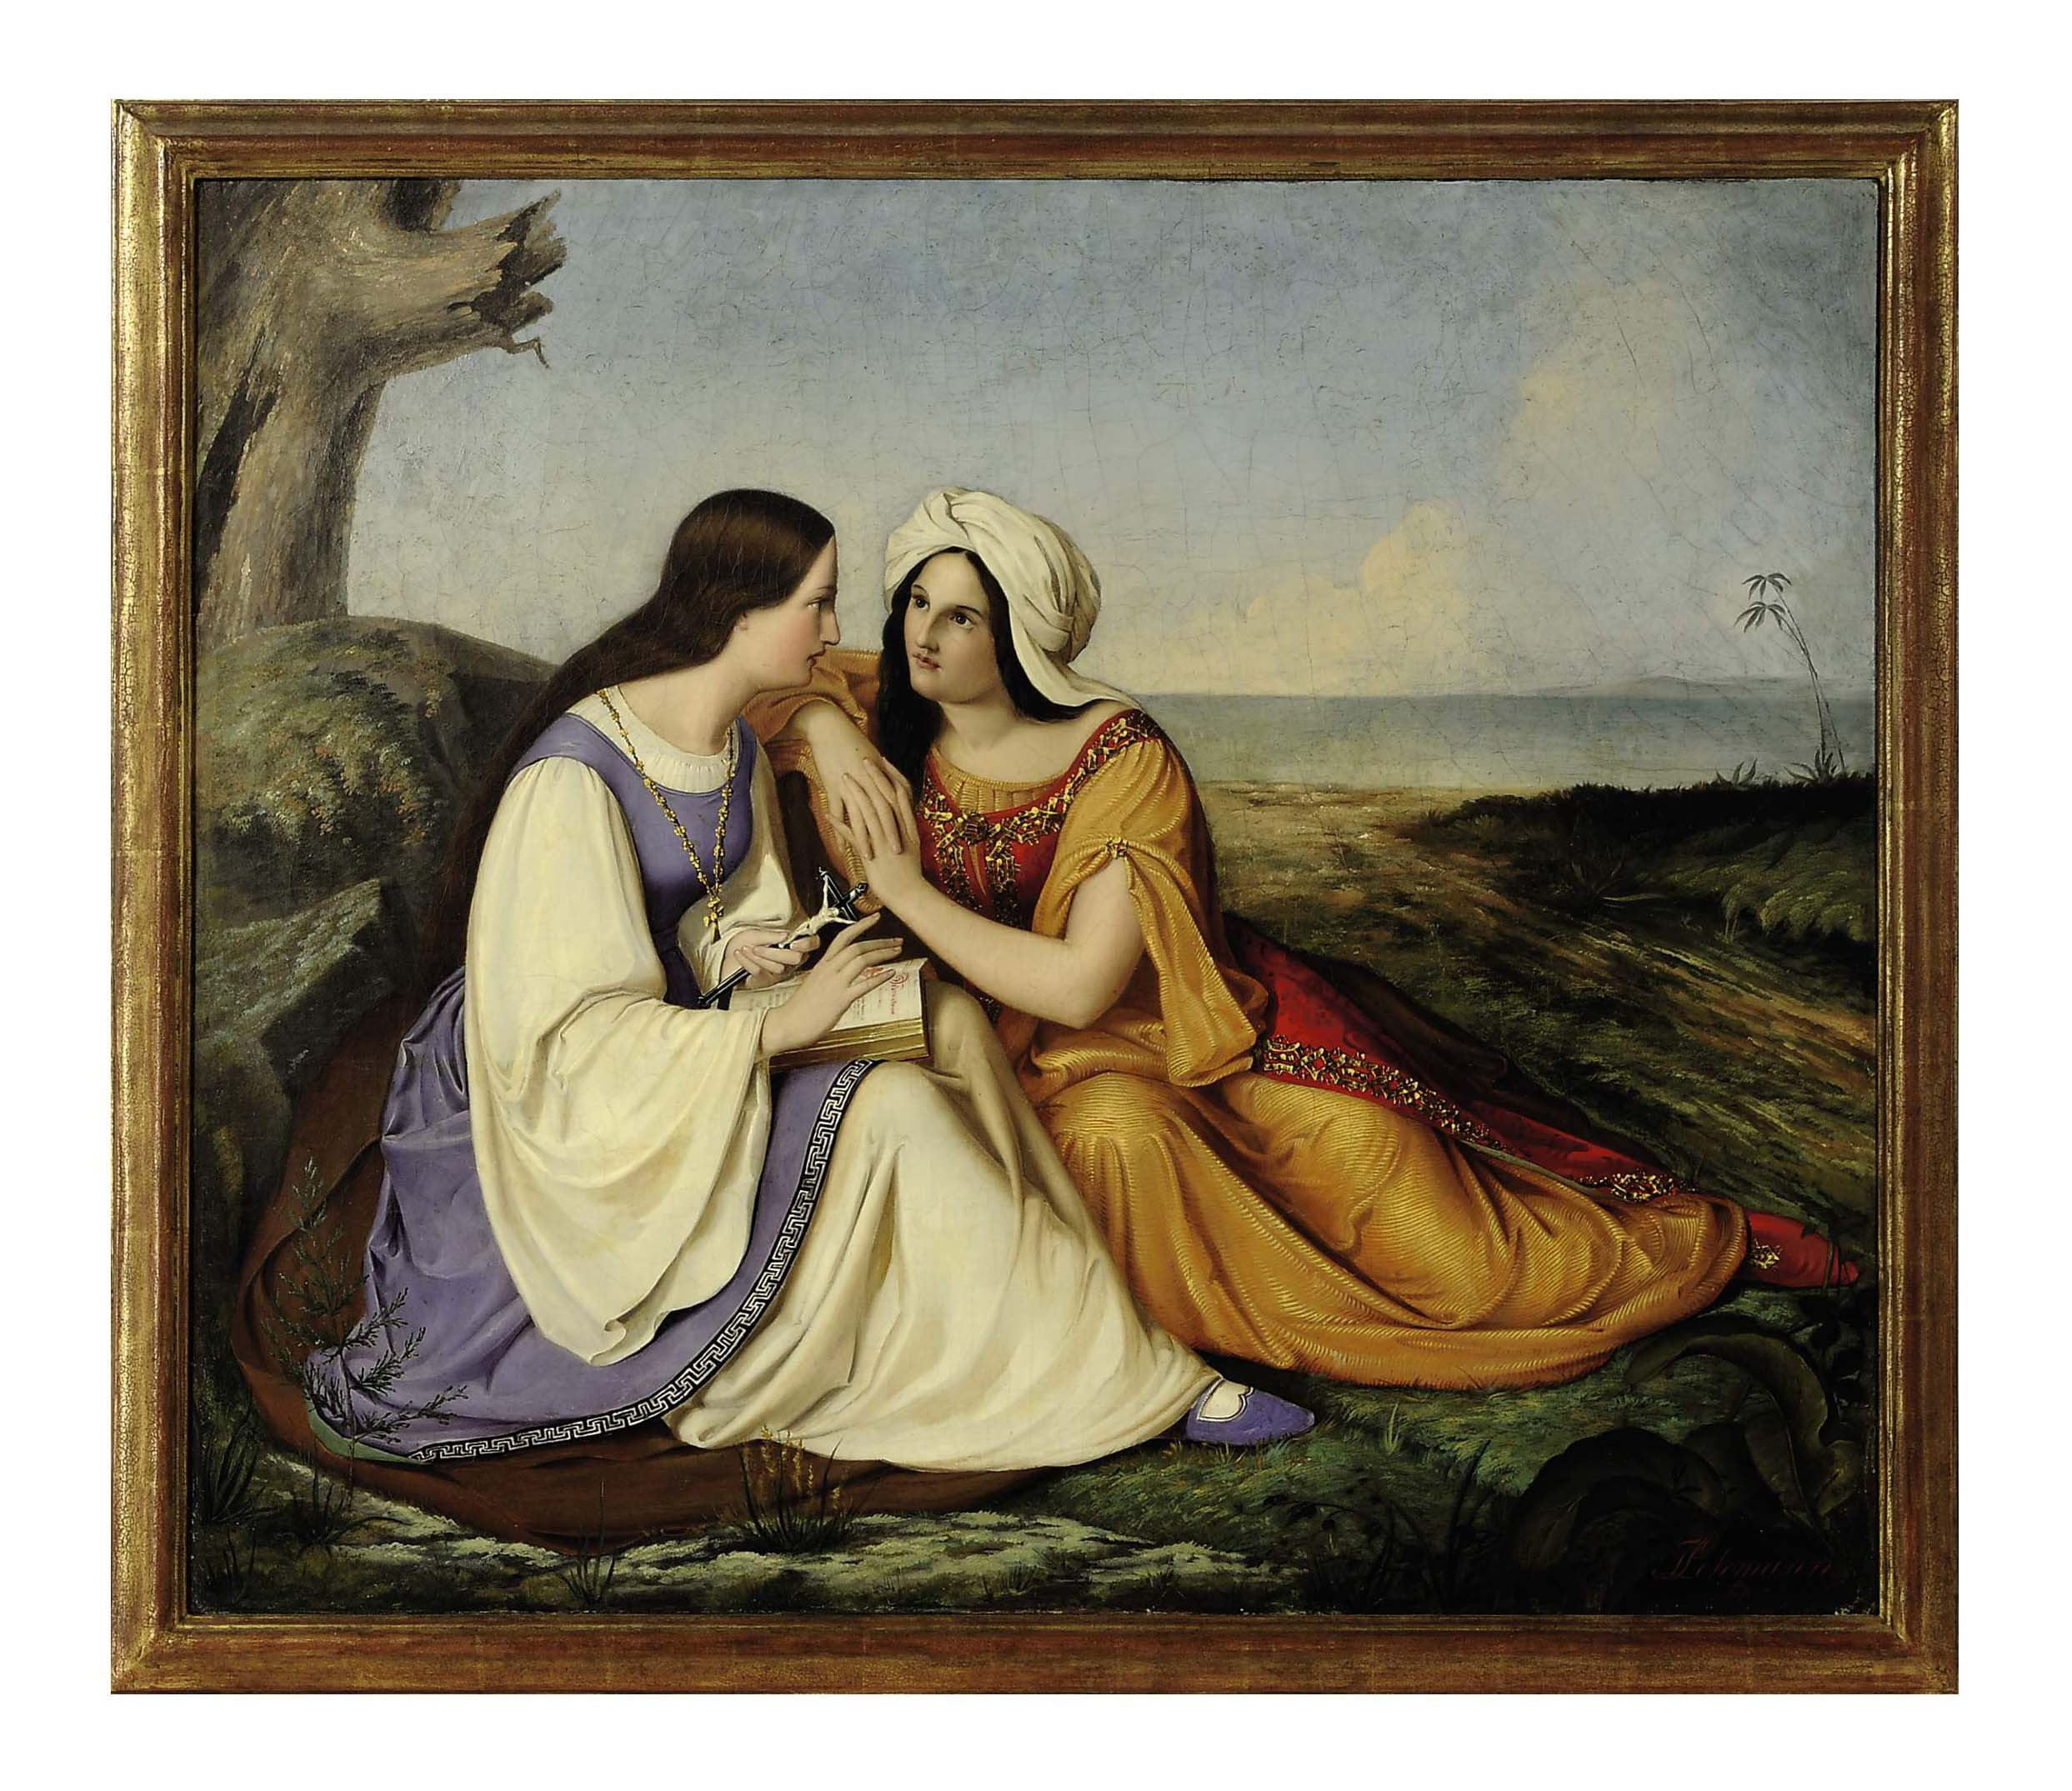 Two women conversing in a landscape